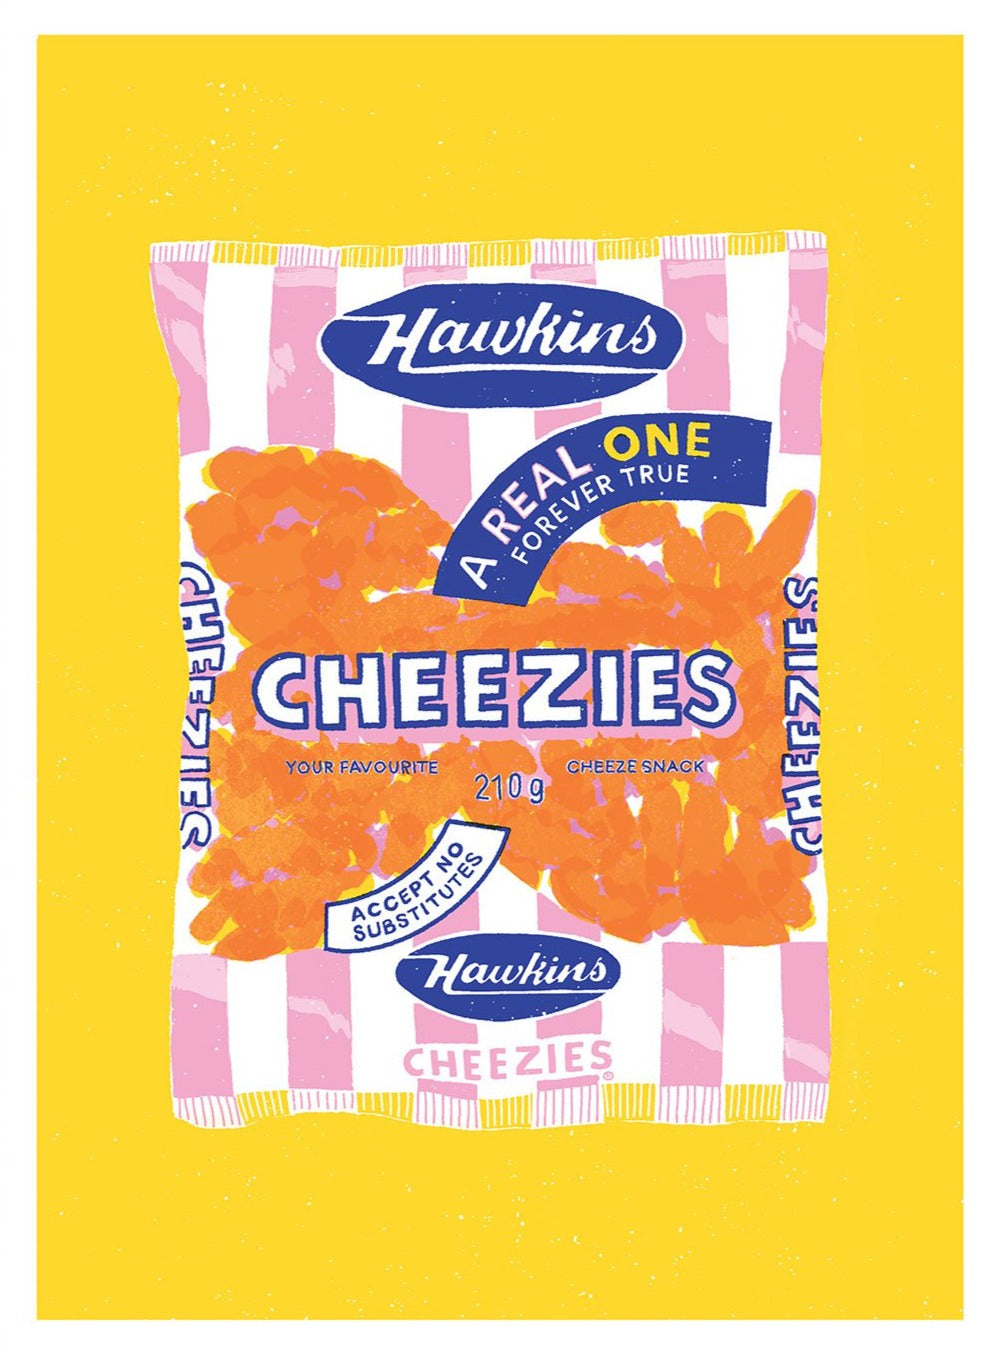 Cheezies Forever Limited Art Print